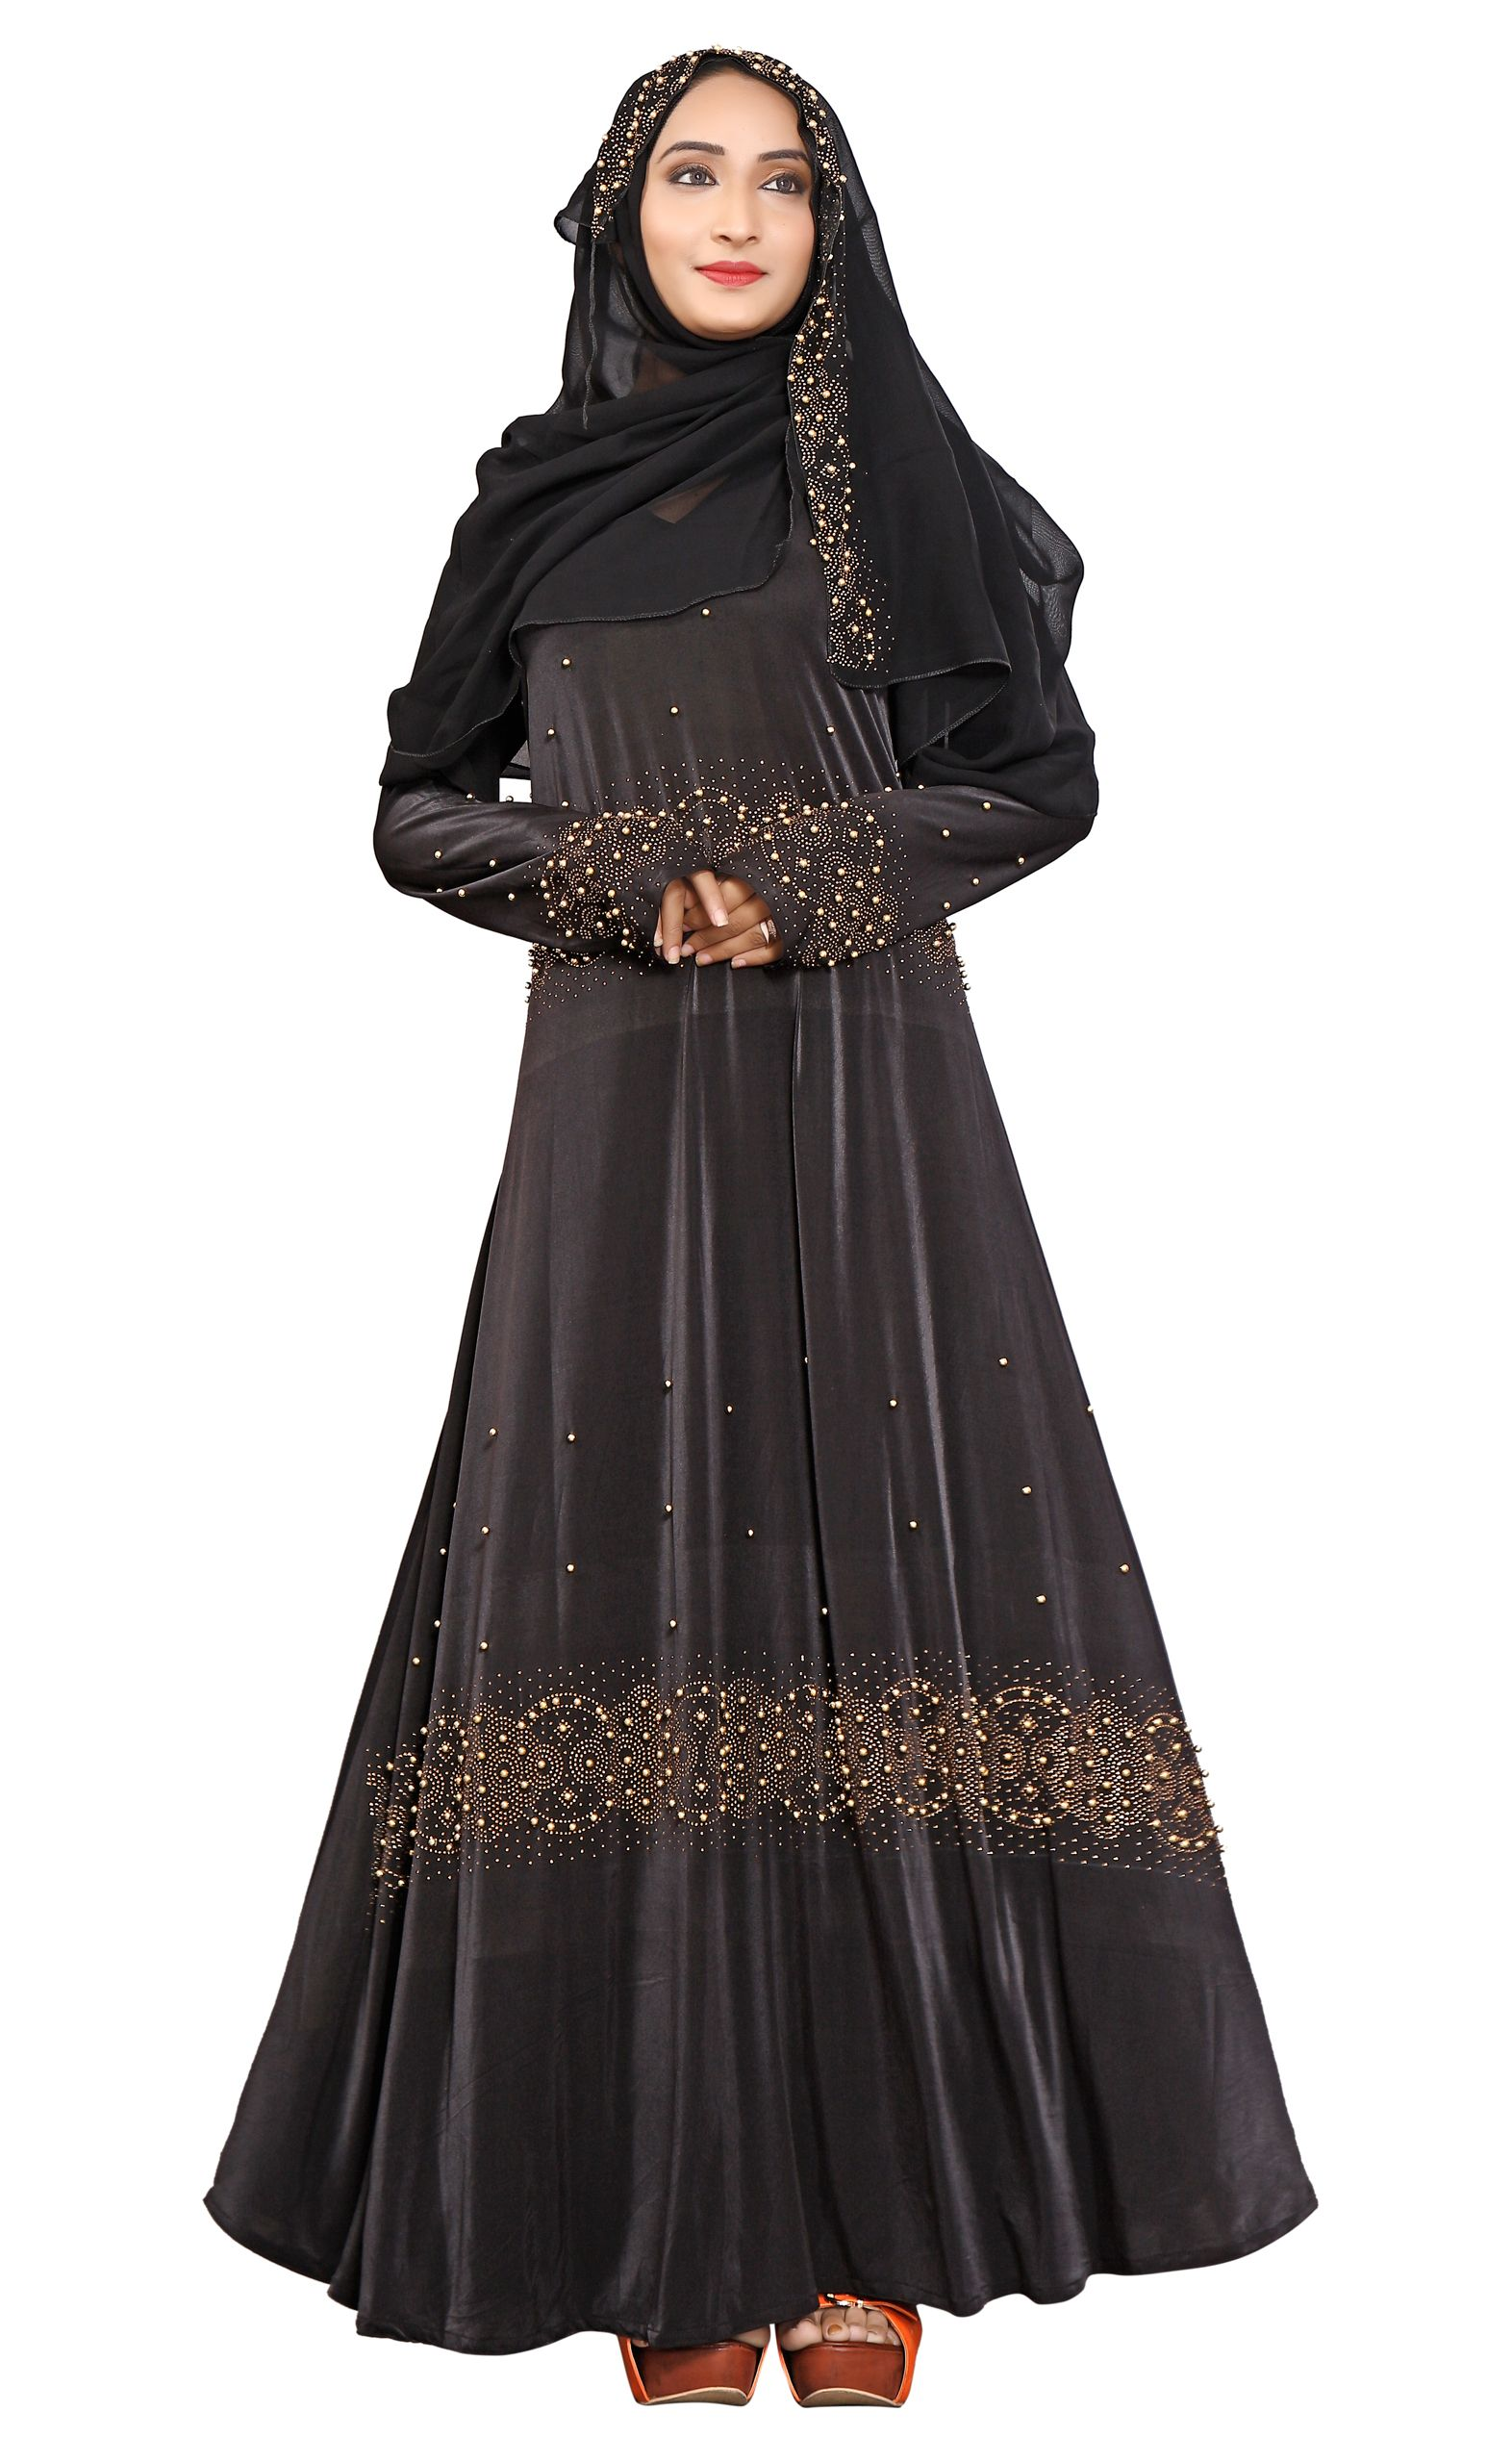 e8d99e465 Burka is a long loose garment covering the whole body from head to feet.